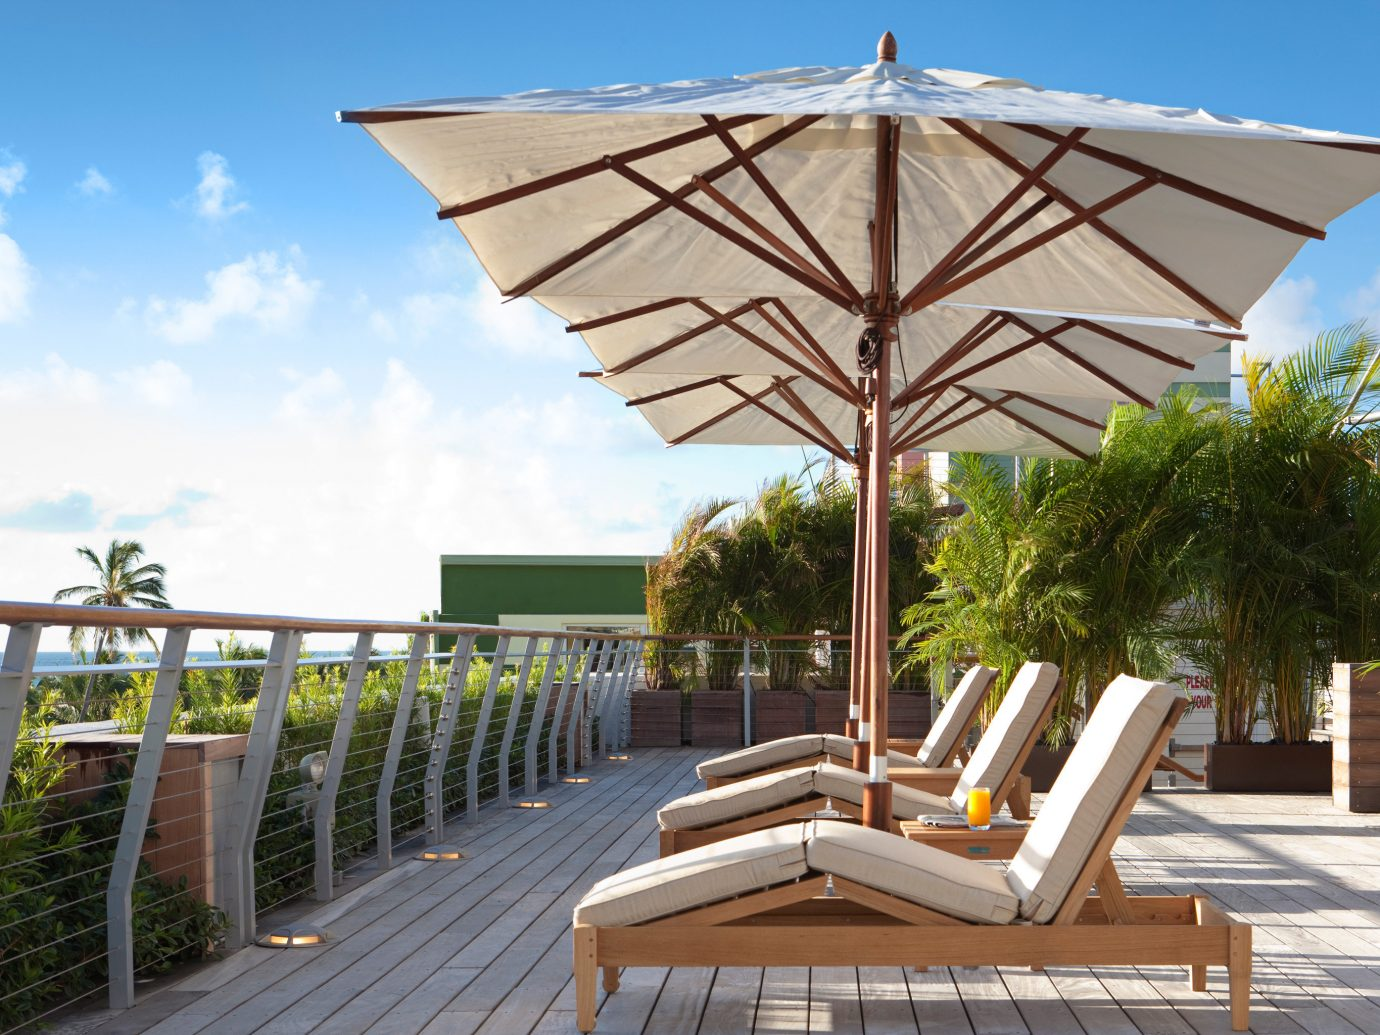 Food + Drink Girls Getaways Hotels Jetsetter Guides Lounge Patio Resort Rooftop Scenic views shopping Style + Design Weekend Getaways sky outdoor tree umbrella chair accessory walkway outdoor structure set furniture shade day